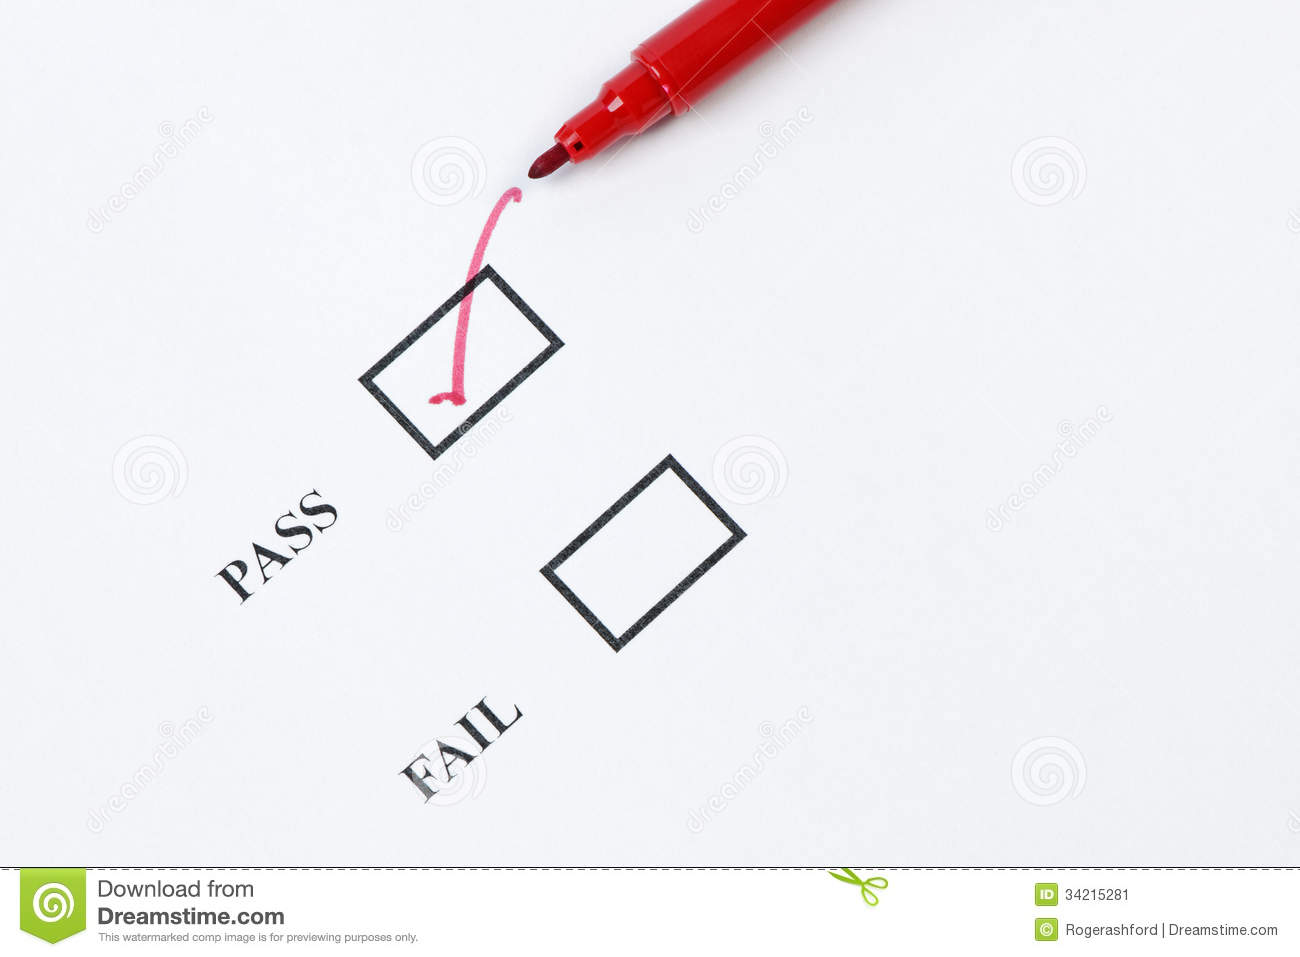 pass - exam mark or quality control stock image